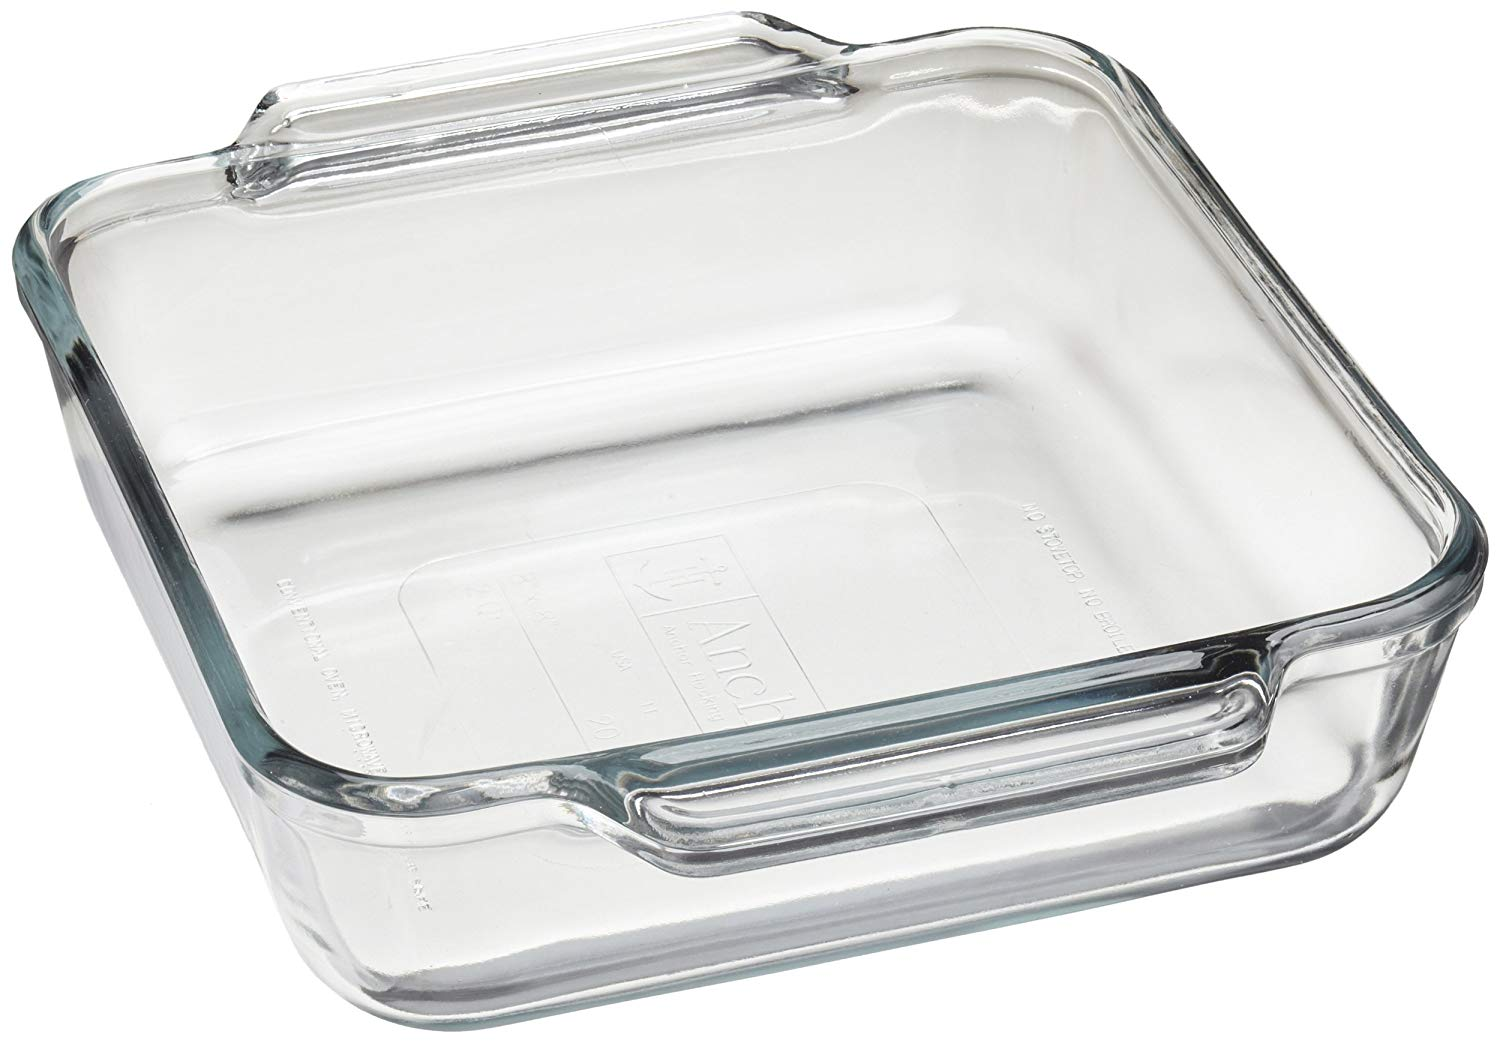 8x8 Glass Baking Dish